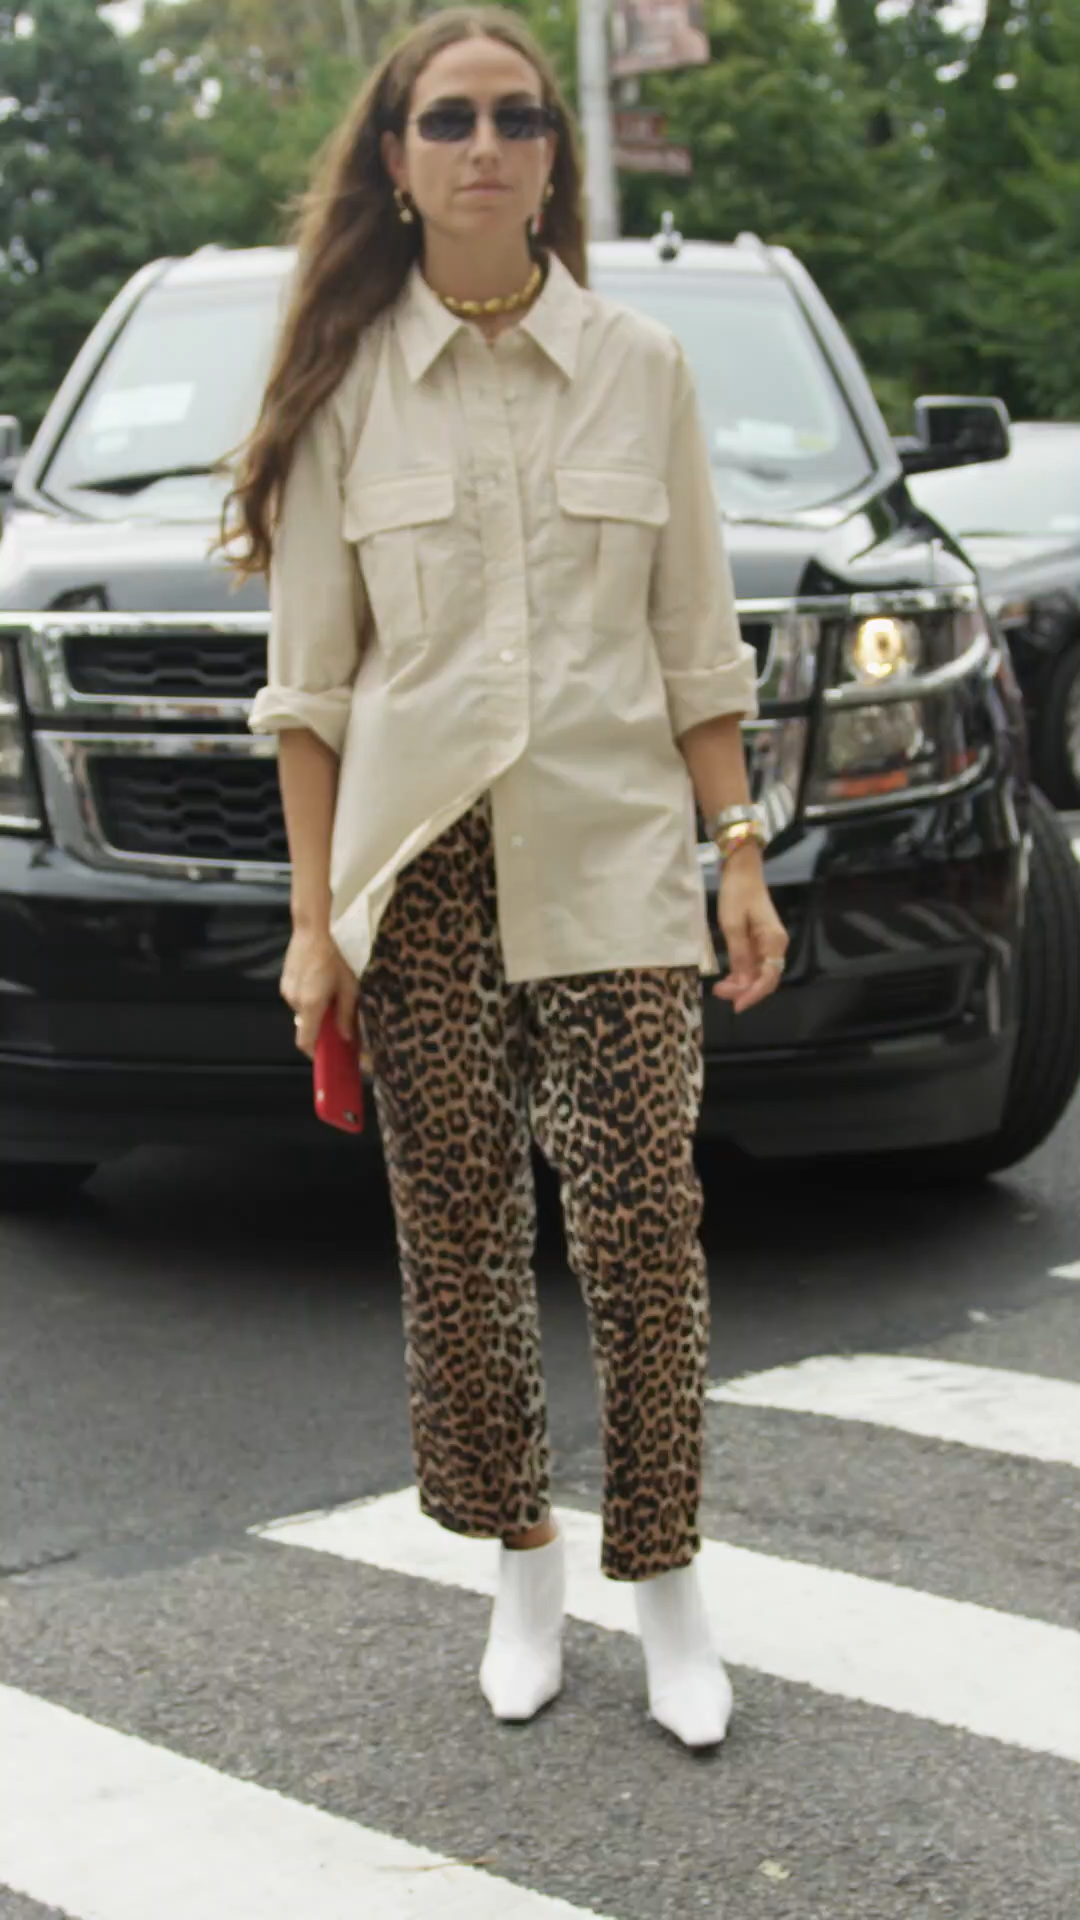 943afb2cee52 Ten outfit ideas for wearing leopard print this season. Click for more +  shop outfits!